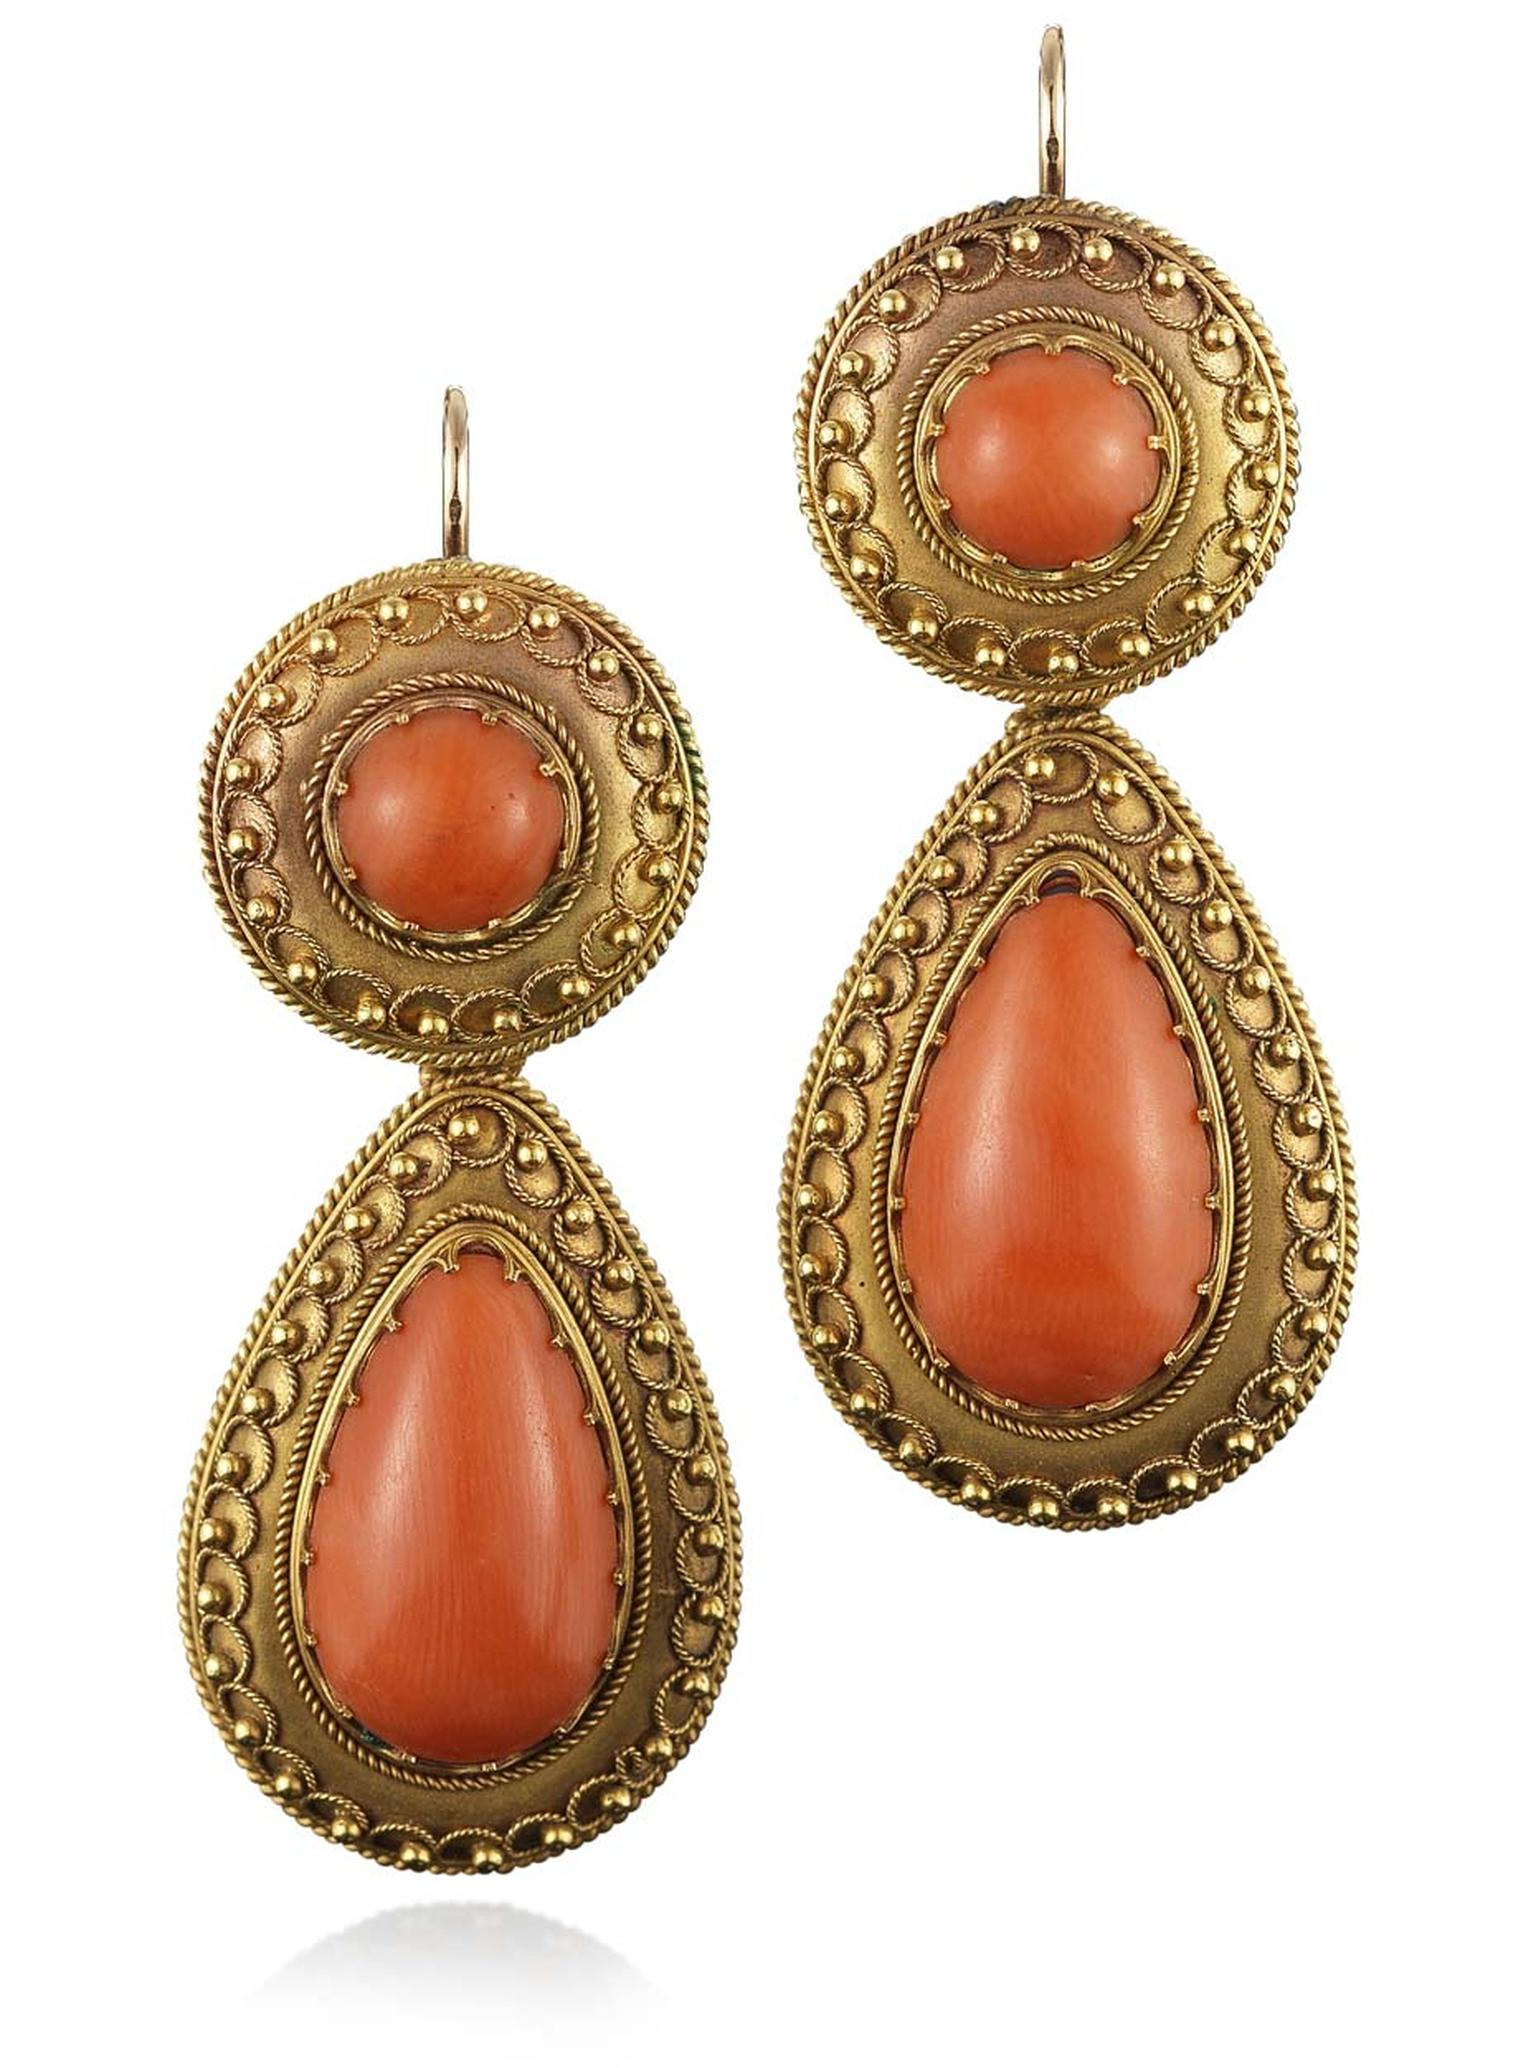 Fred Leighton Etruscan Revival pendant earrings featuring gold and coral, circa 1870 ($7,800).